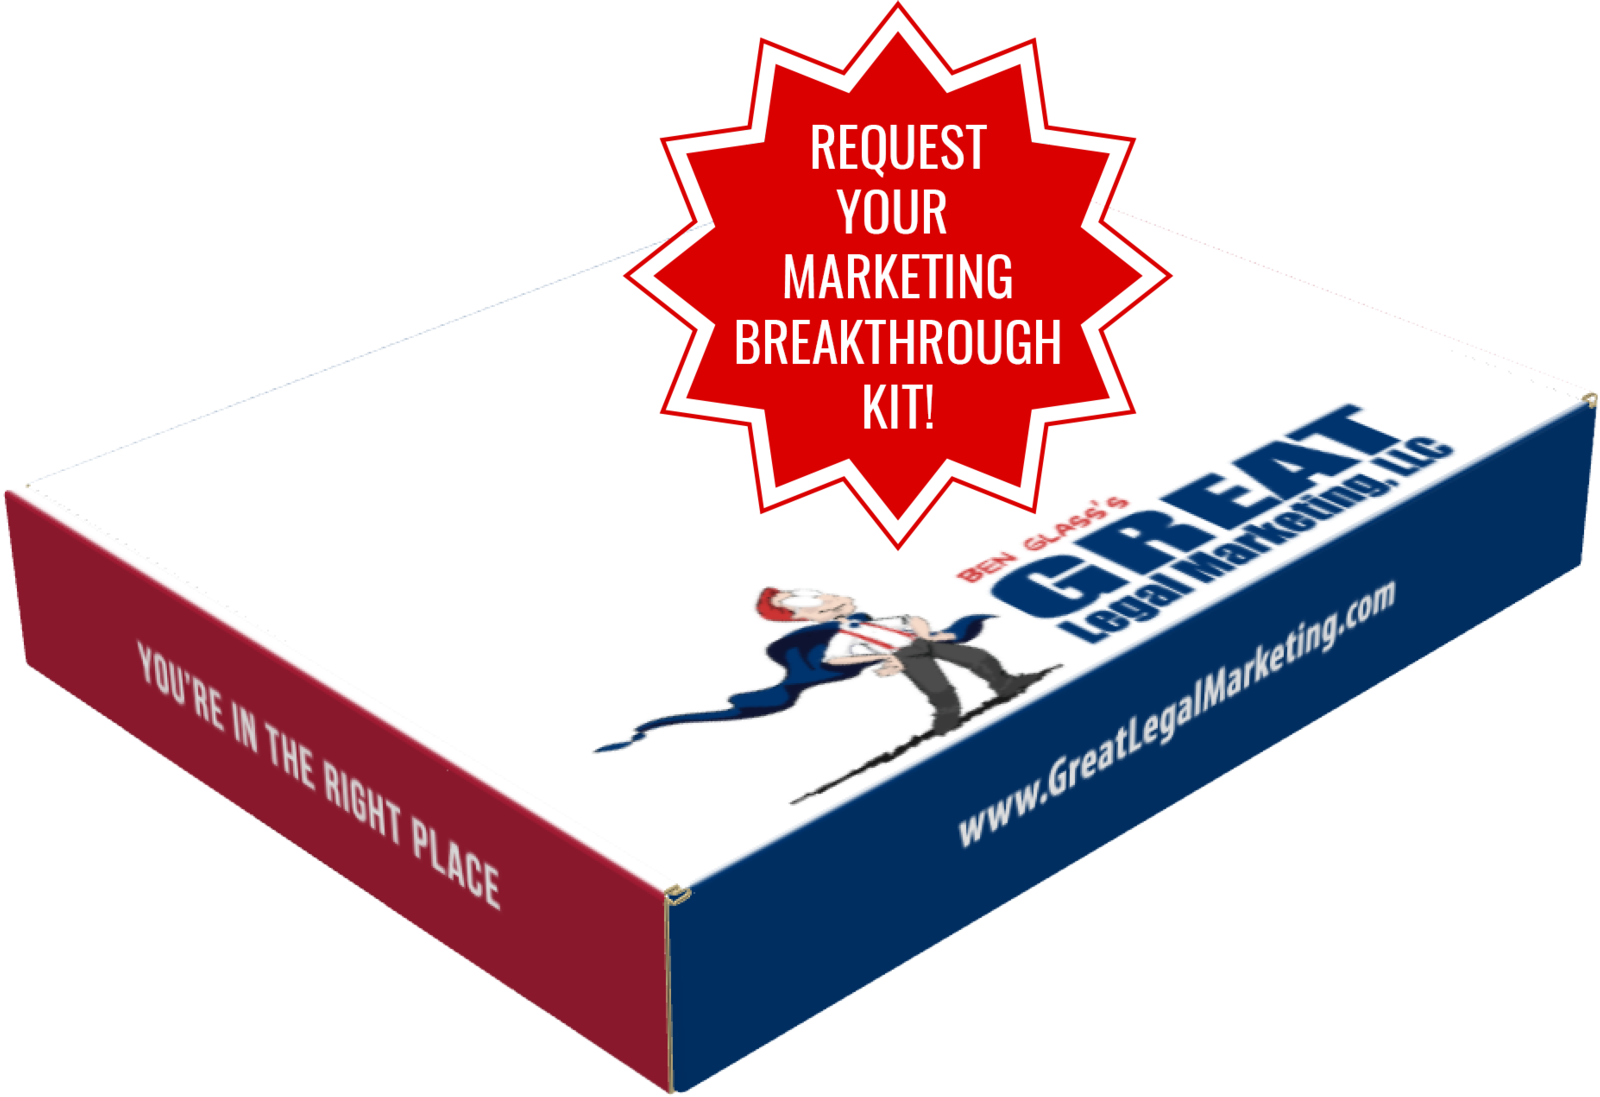 Request Your Marketing Breakthrough Kit from Great Legal Marketing!